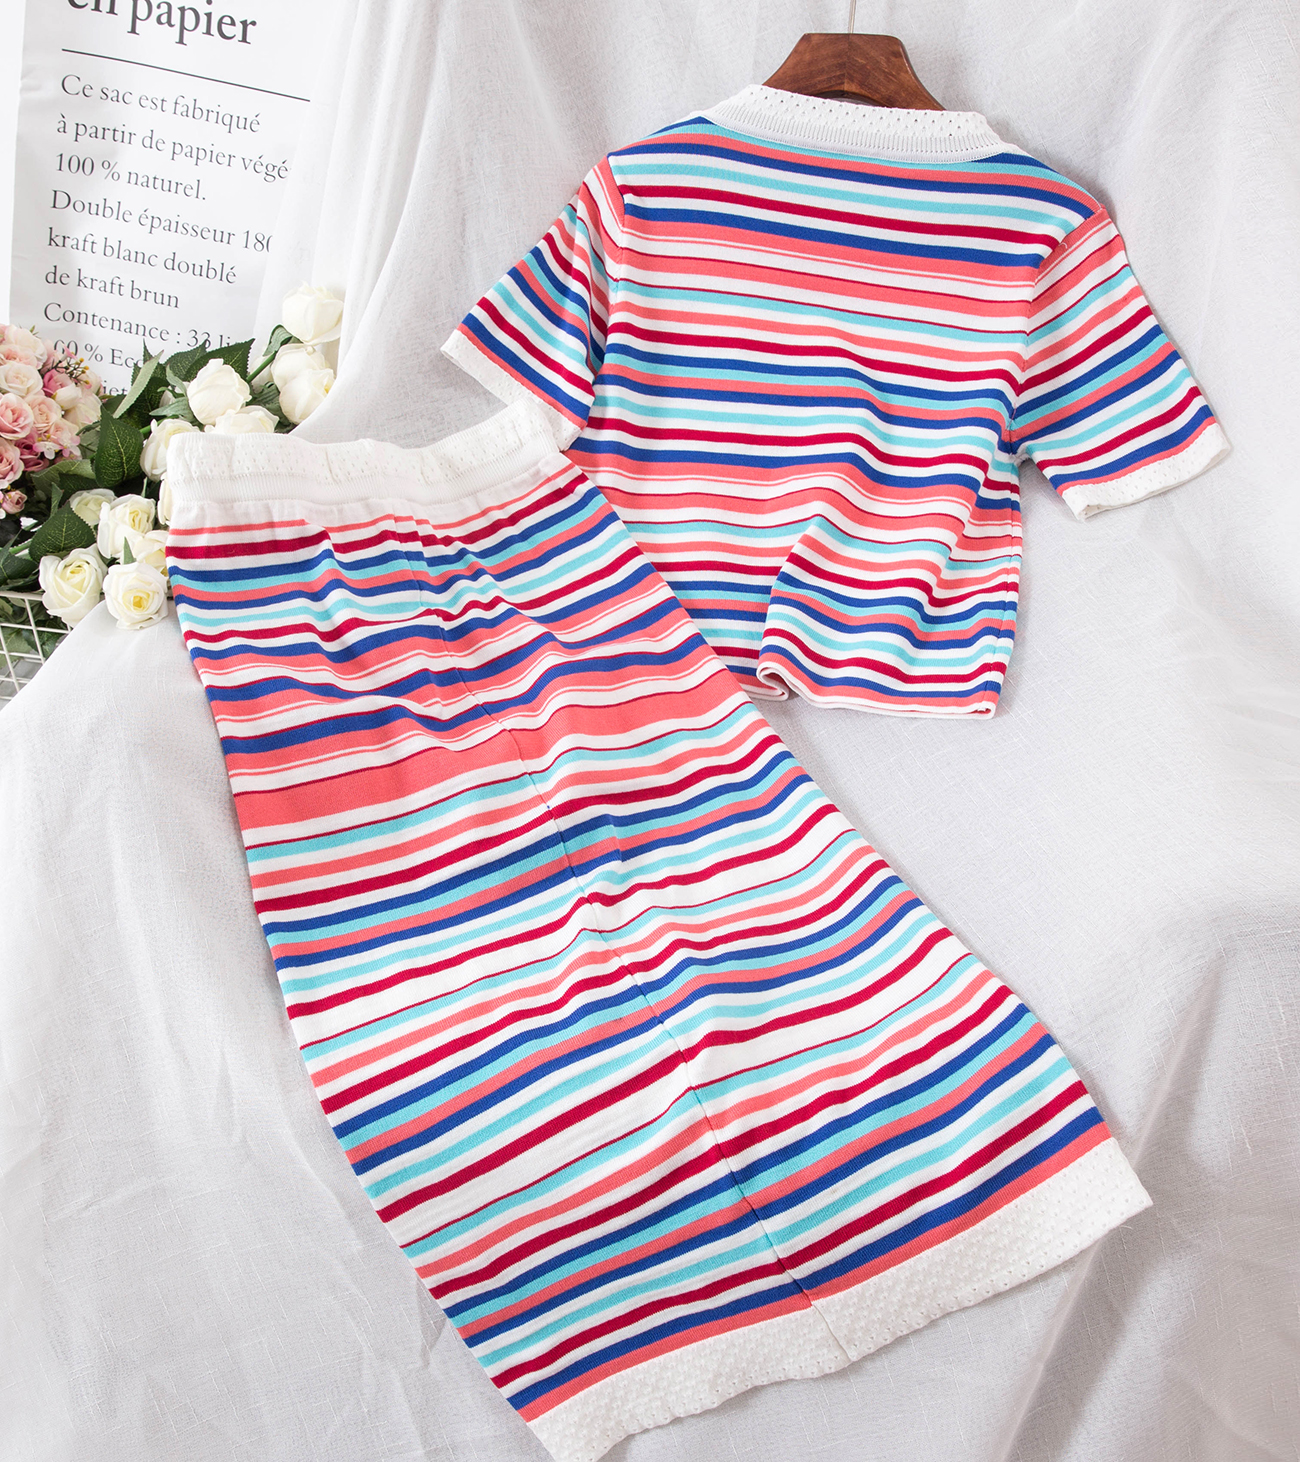 2018 Summer Knitted Two Piece Sets Woman Suits Lady Suit Office Wear Clothes New Short Sleeve Tops And Slim Skirts 2 Pcs Set 1